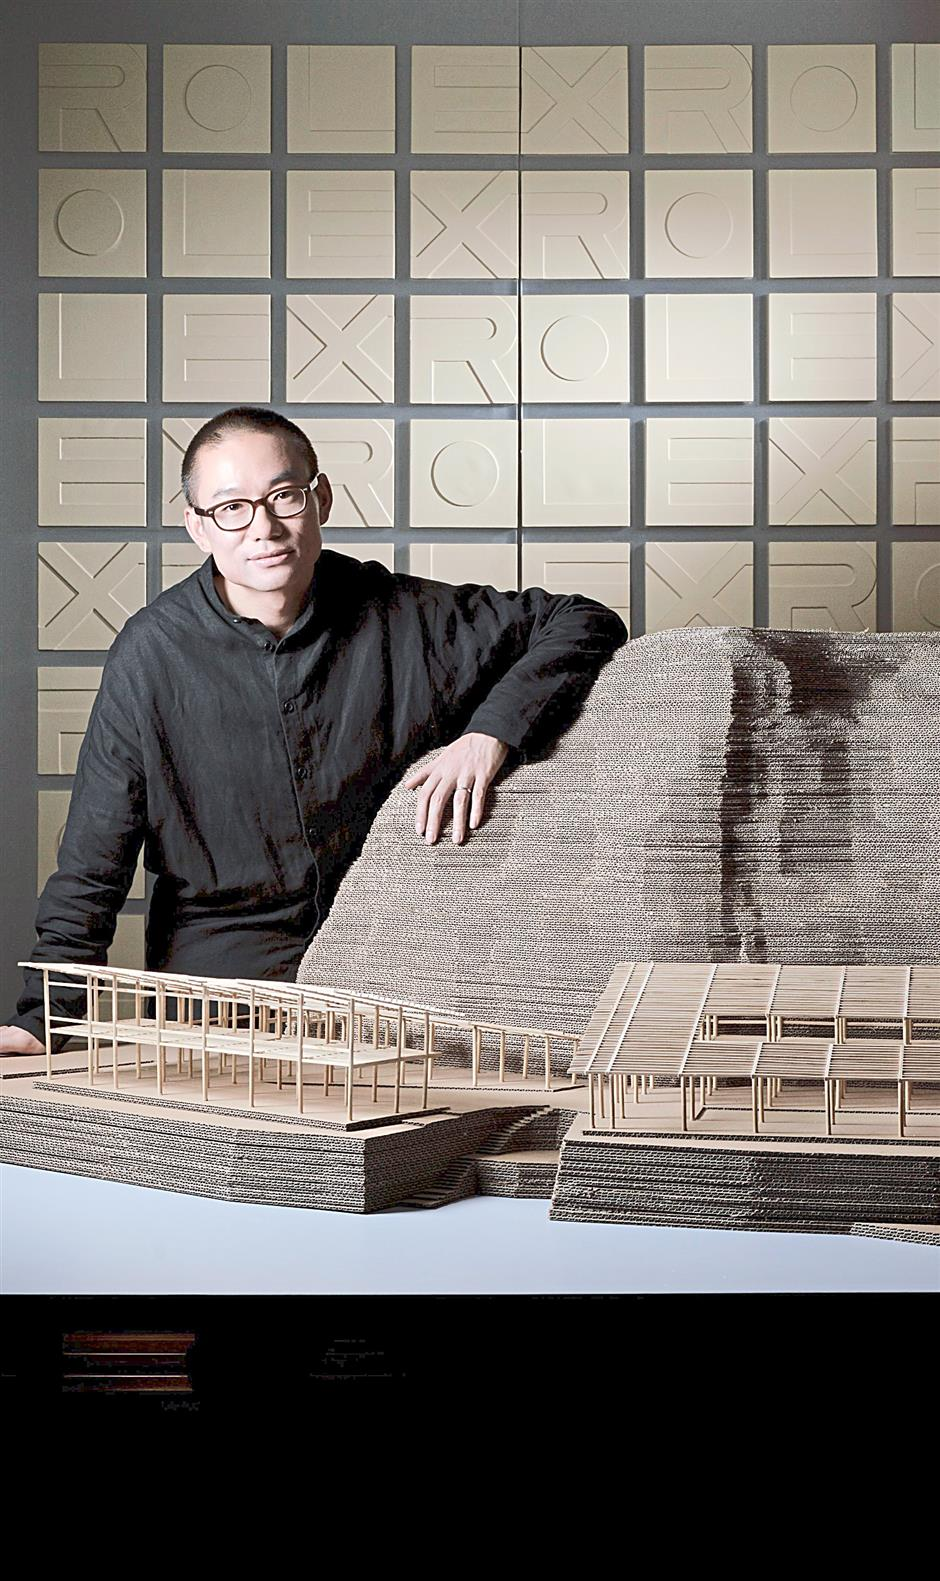 Yunnan Province-based architect Zhao Yang is part of the rising generation of Chinese architects striving to define a modern Chinese design language and turn the country into a creative architectural force. An alumni of Harvard Graduate School of Design, Zhao was the inaugural architectural protege of the Rolex Mentor and Protege Arts initiative in 2012.